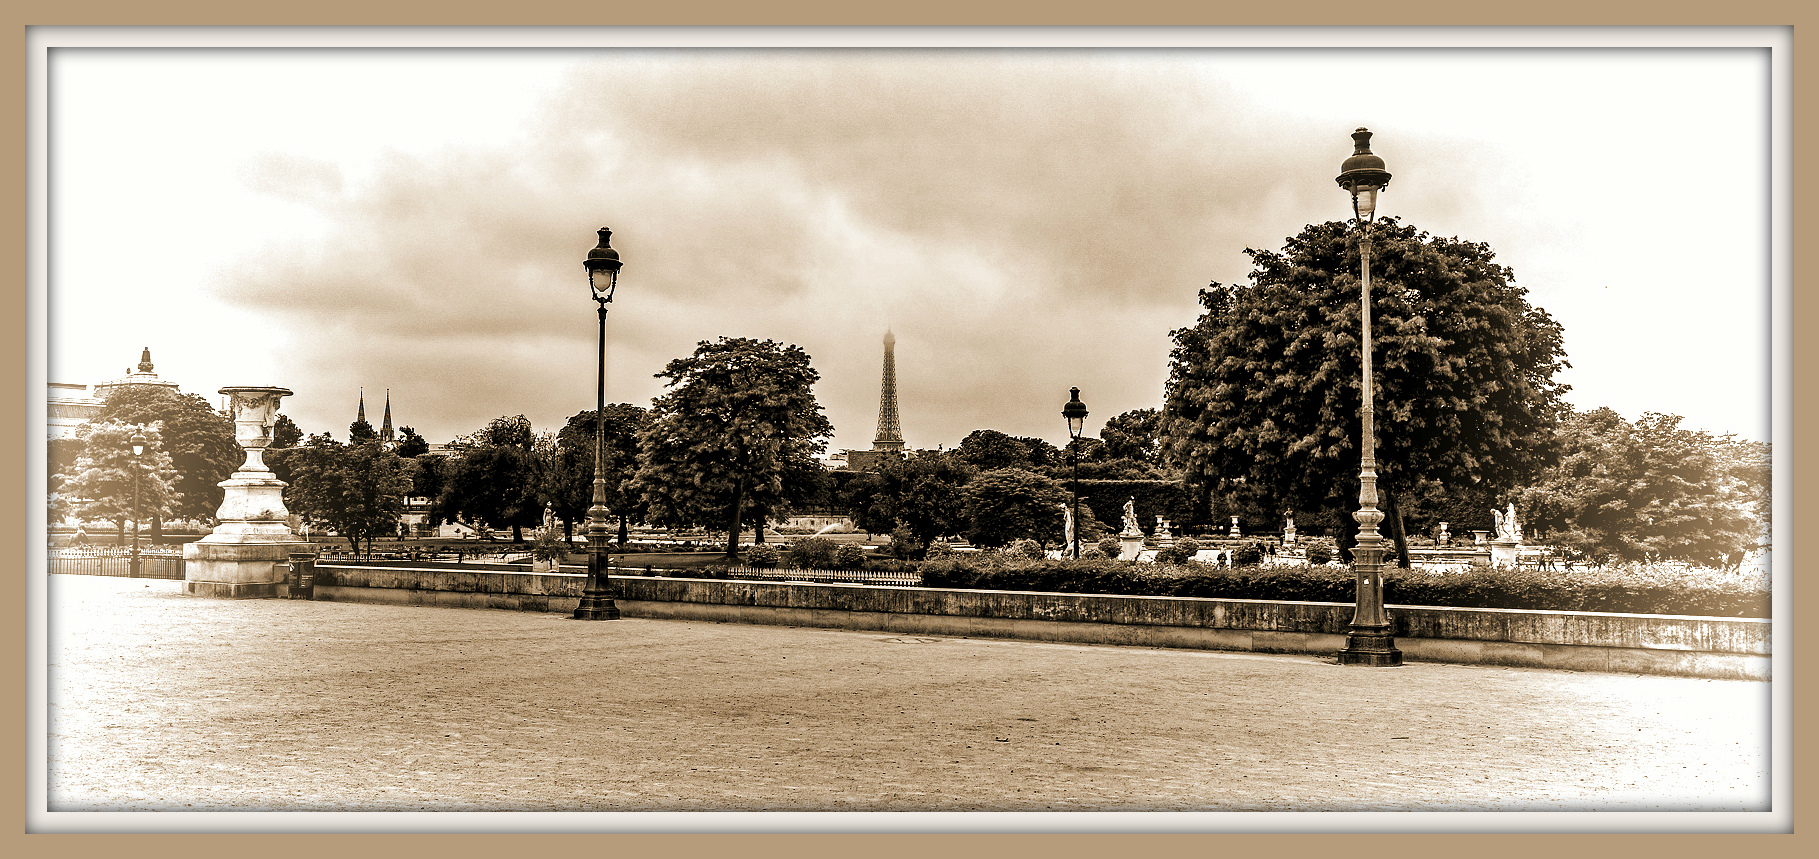 Eiffel Tower as viewed from the Louvre-Paris, France